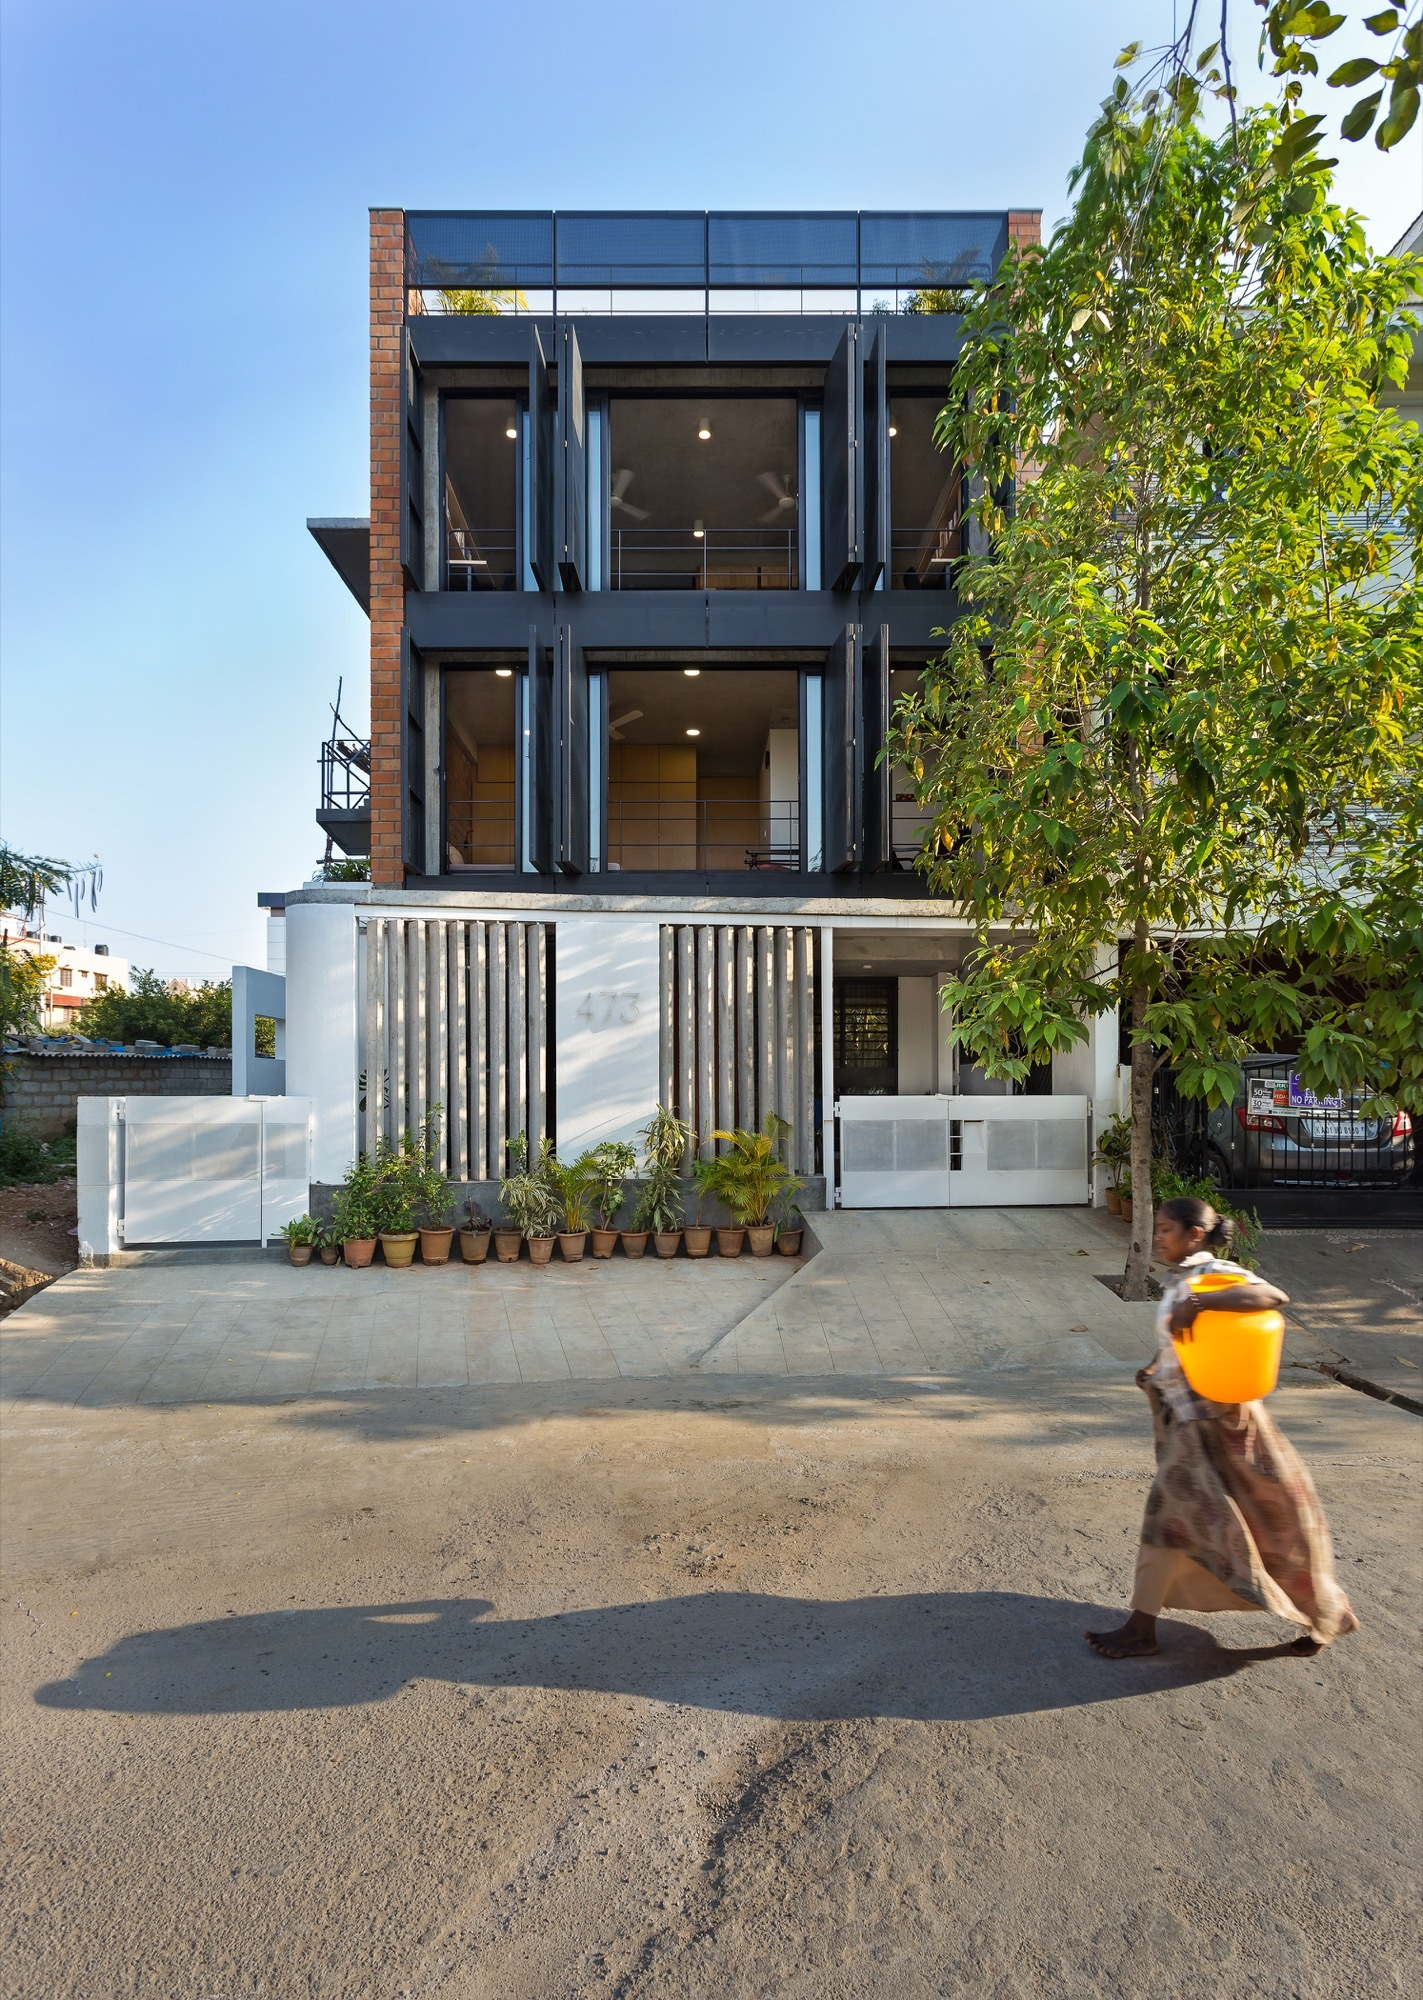 Architects home studio betweenspaces archdaily for Between spaces architecture bangalore